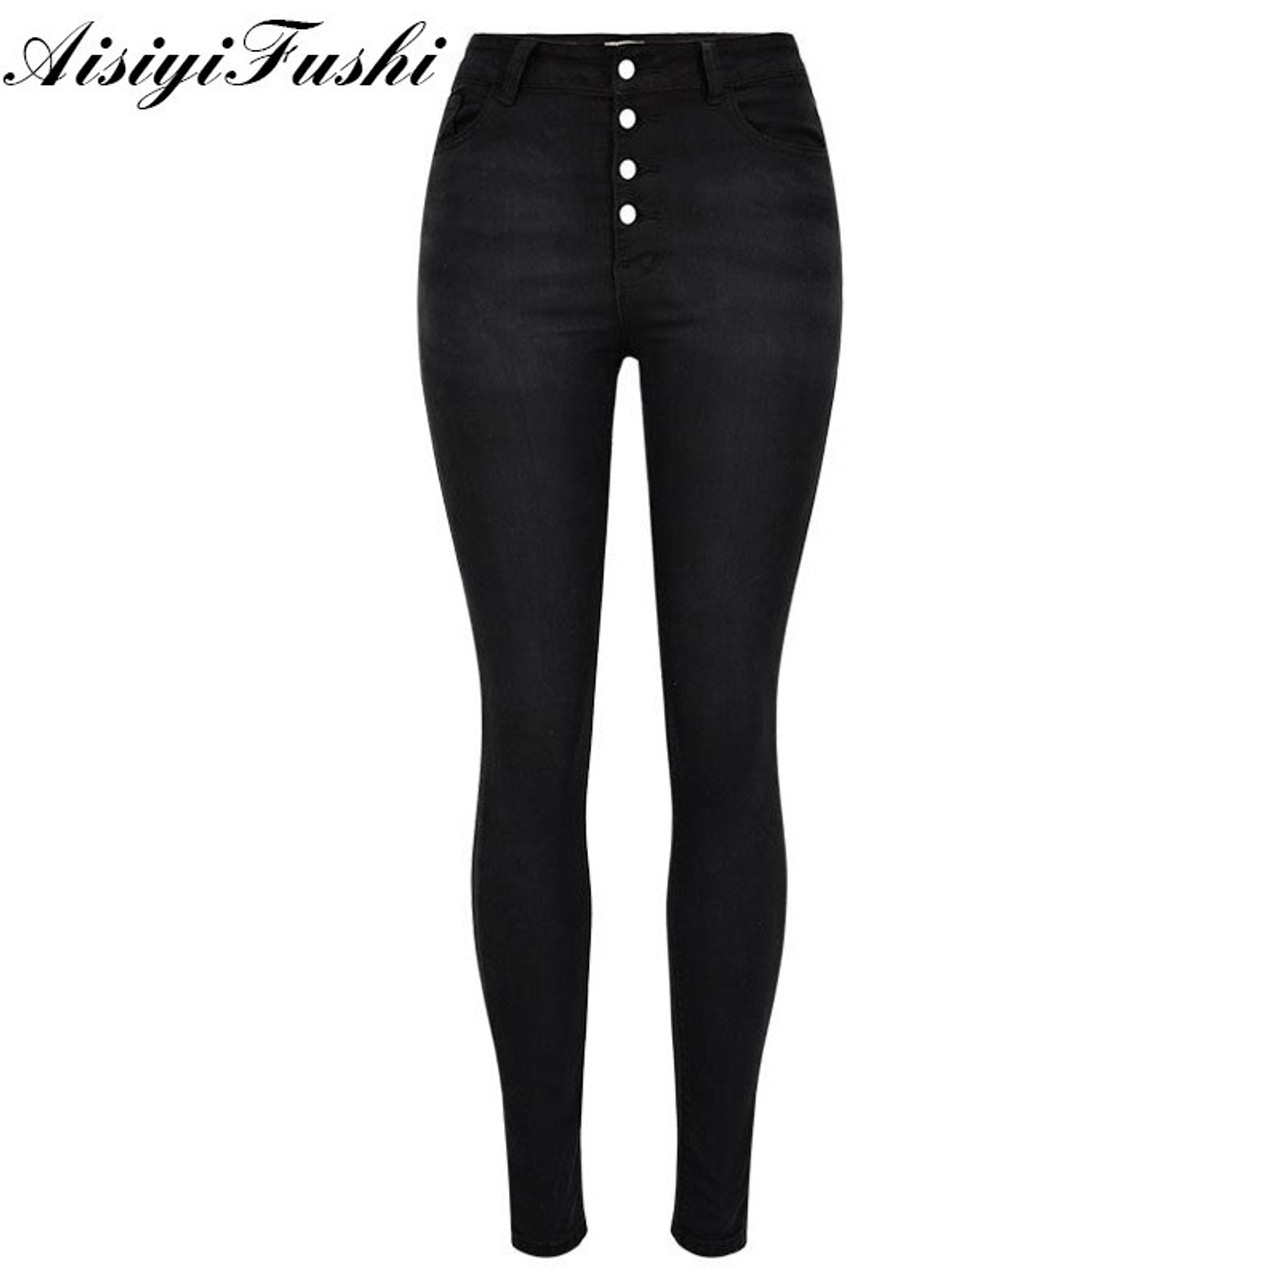 6730781054f ... Black Jeans Woman High Waist Push Up Stretch Denim Ladies Jeans Black Women s  Trousers Skinny Pants ...